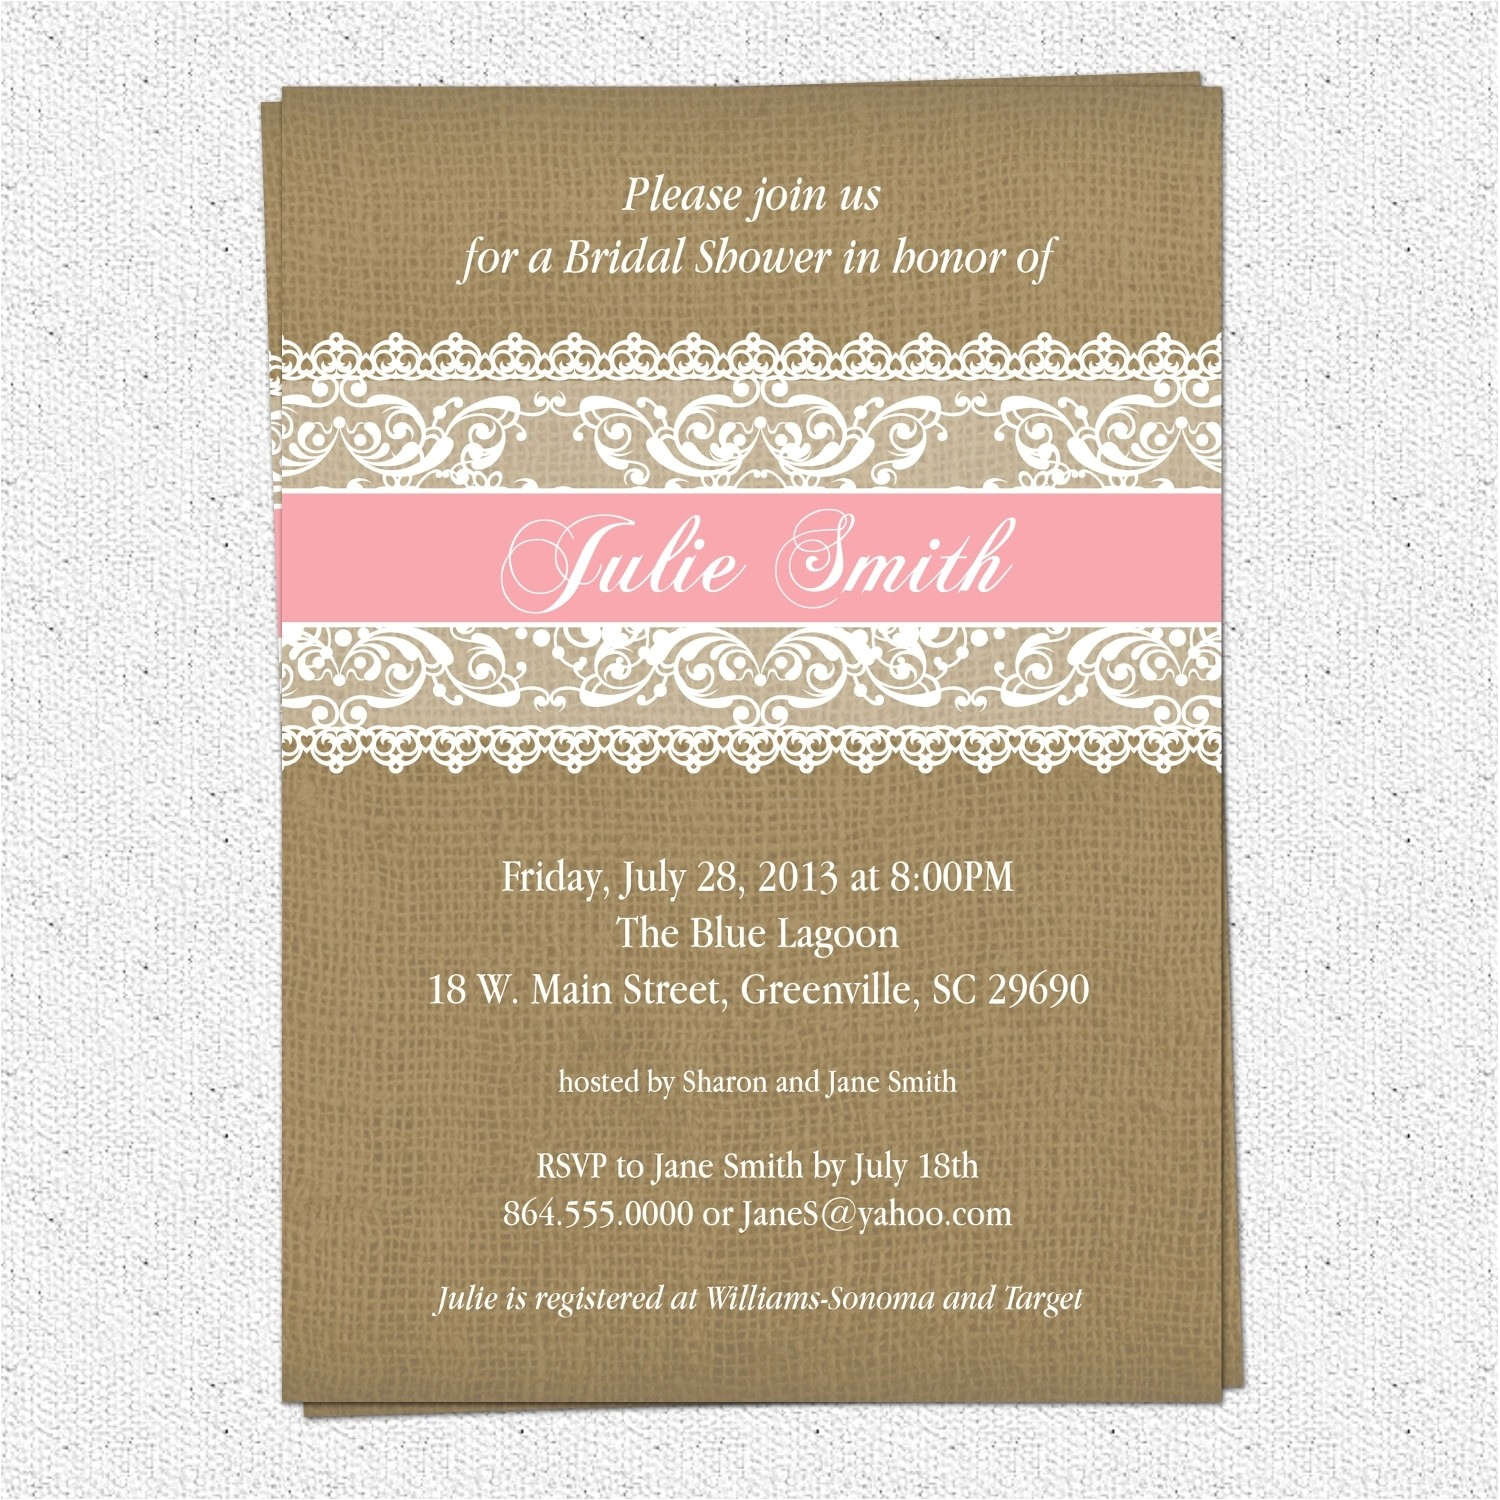 Etiquette for Bridal Shower Invitations Bridal Shower Invite Etiquette Template Resume Builder